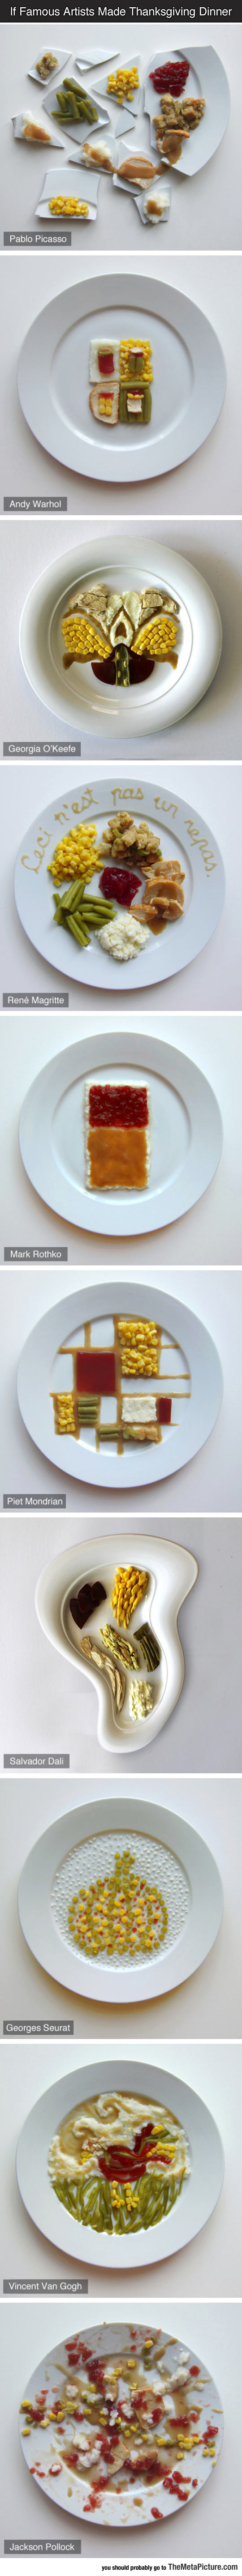 Thanksgiving Dinner By Famous Artists